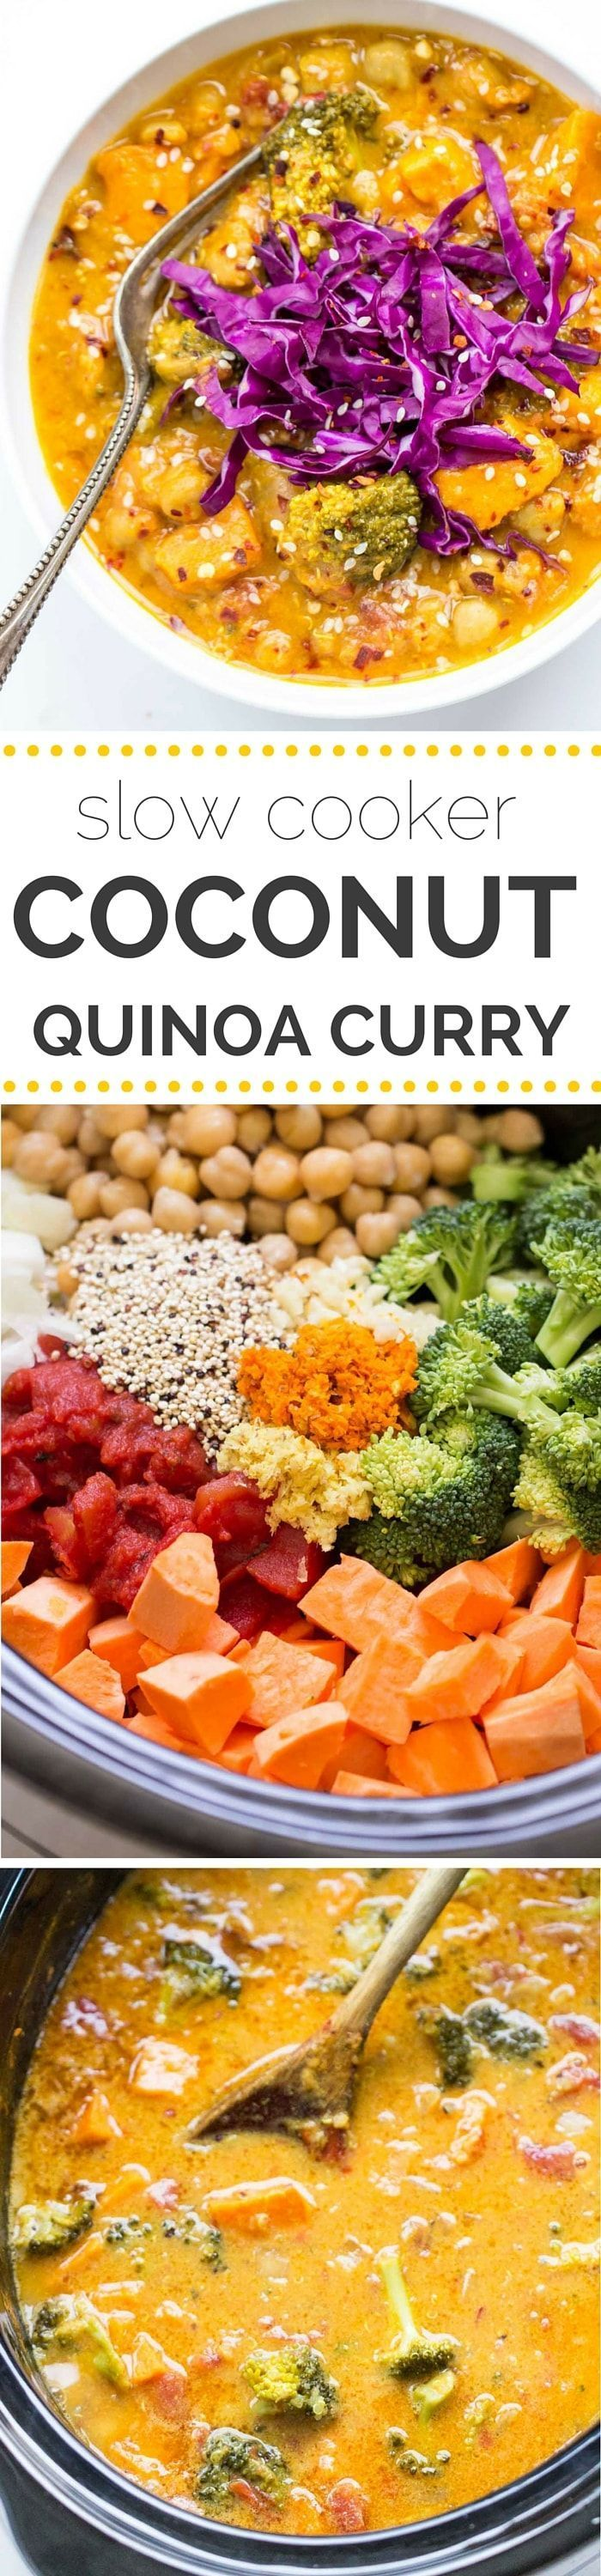 COCONUT QUINOA CURRY -- made in the slow cooker with only a few simple ingredients. Only fresh, wholesome ingredients, it's naturally gluten-free AND vegetarian too!